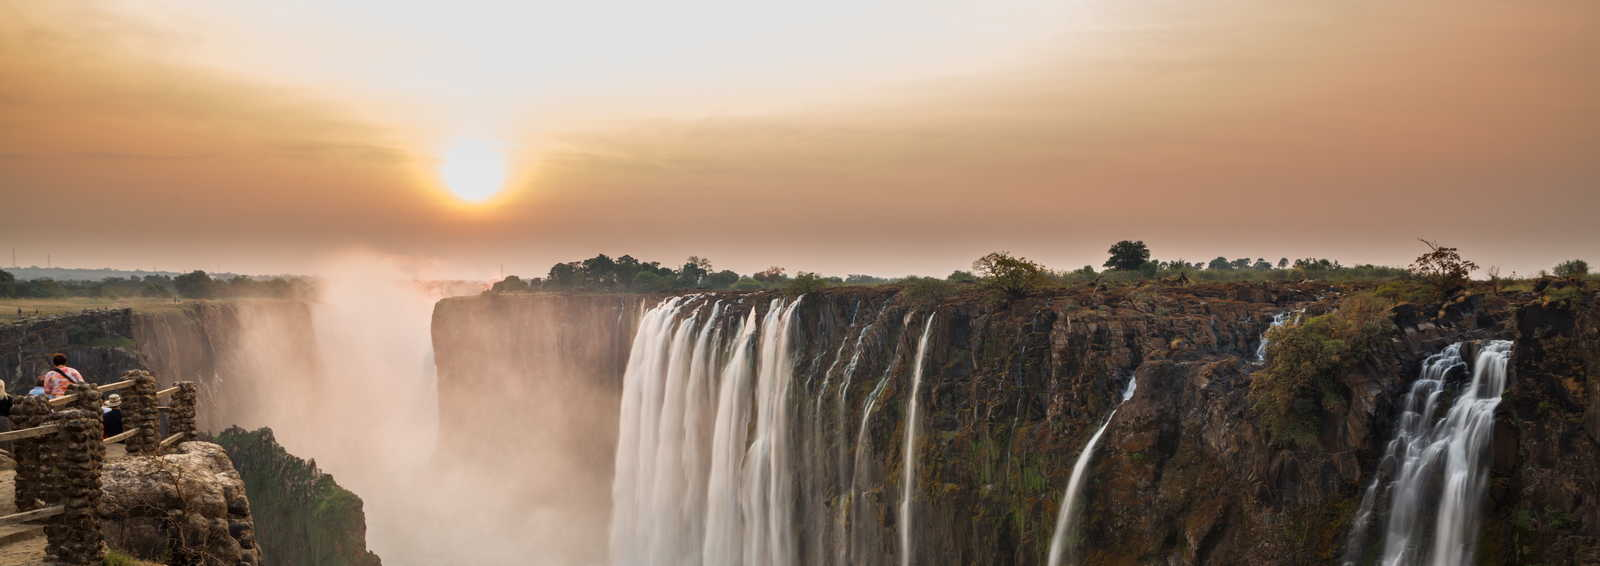 Sunset at Victoria Falls, Zambia